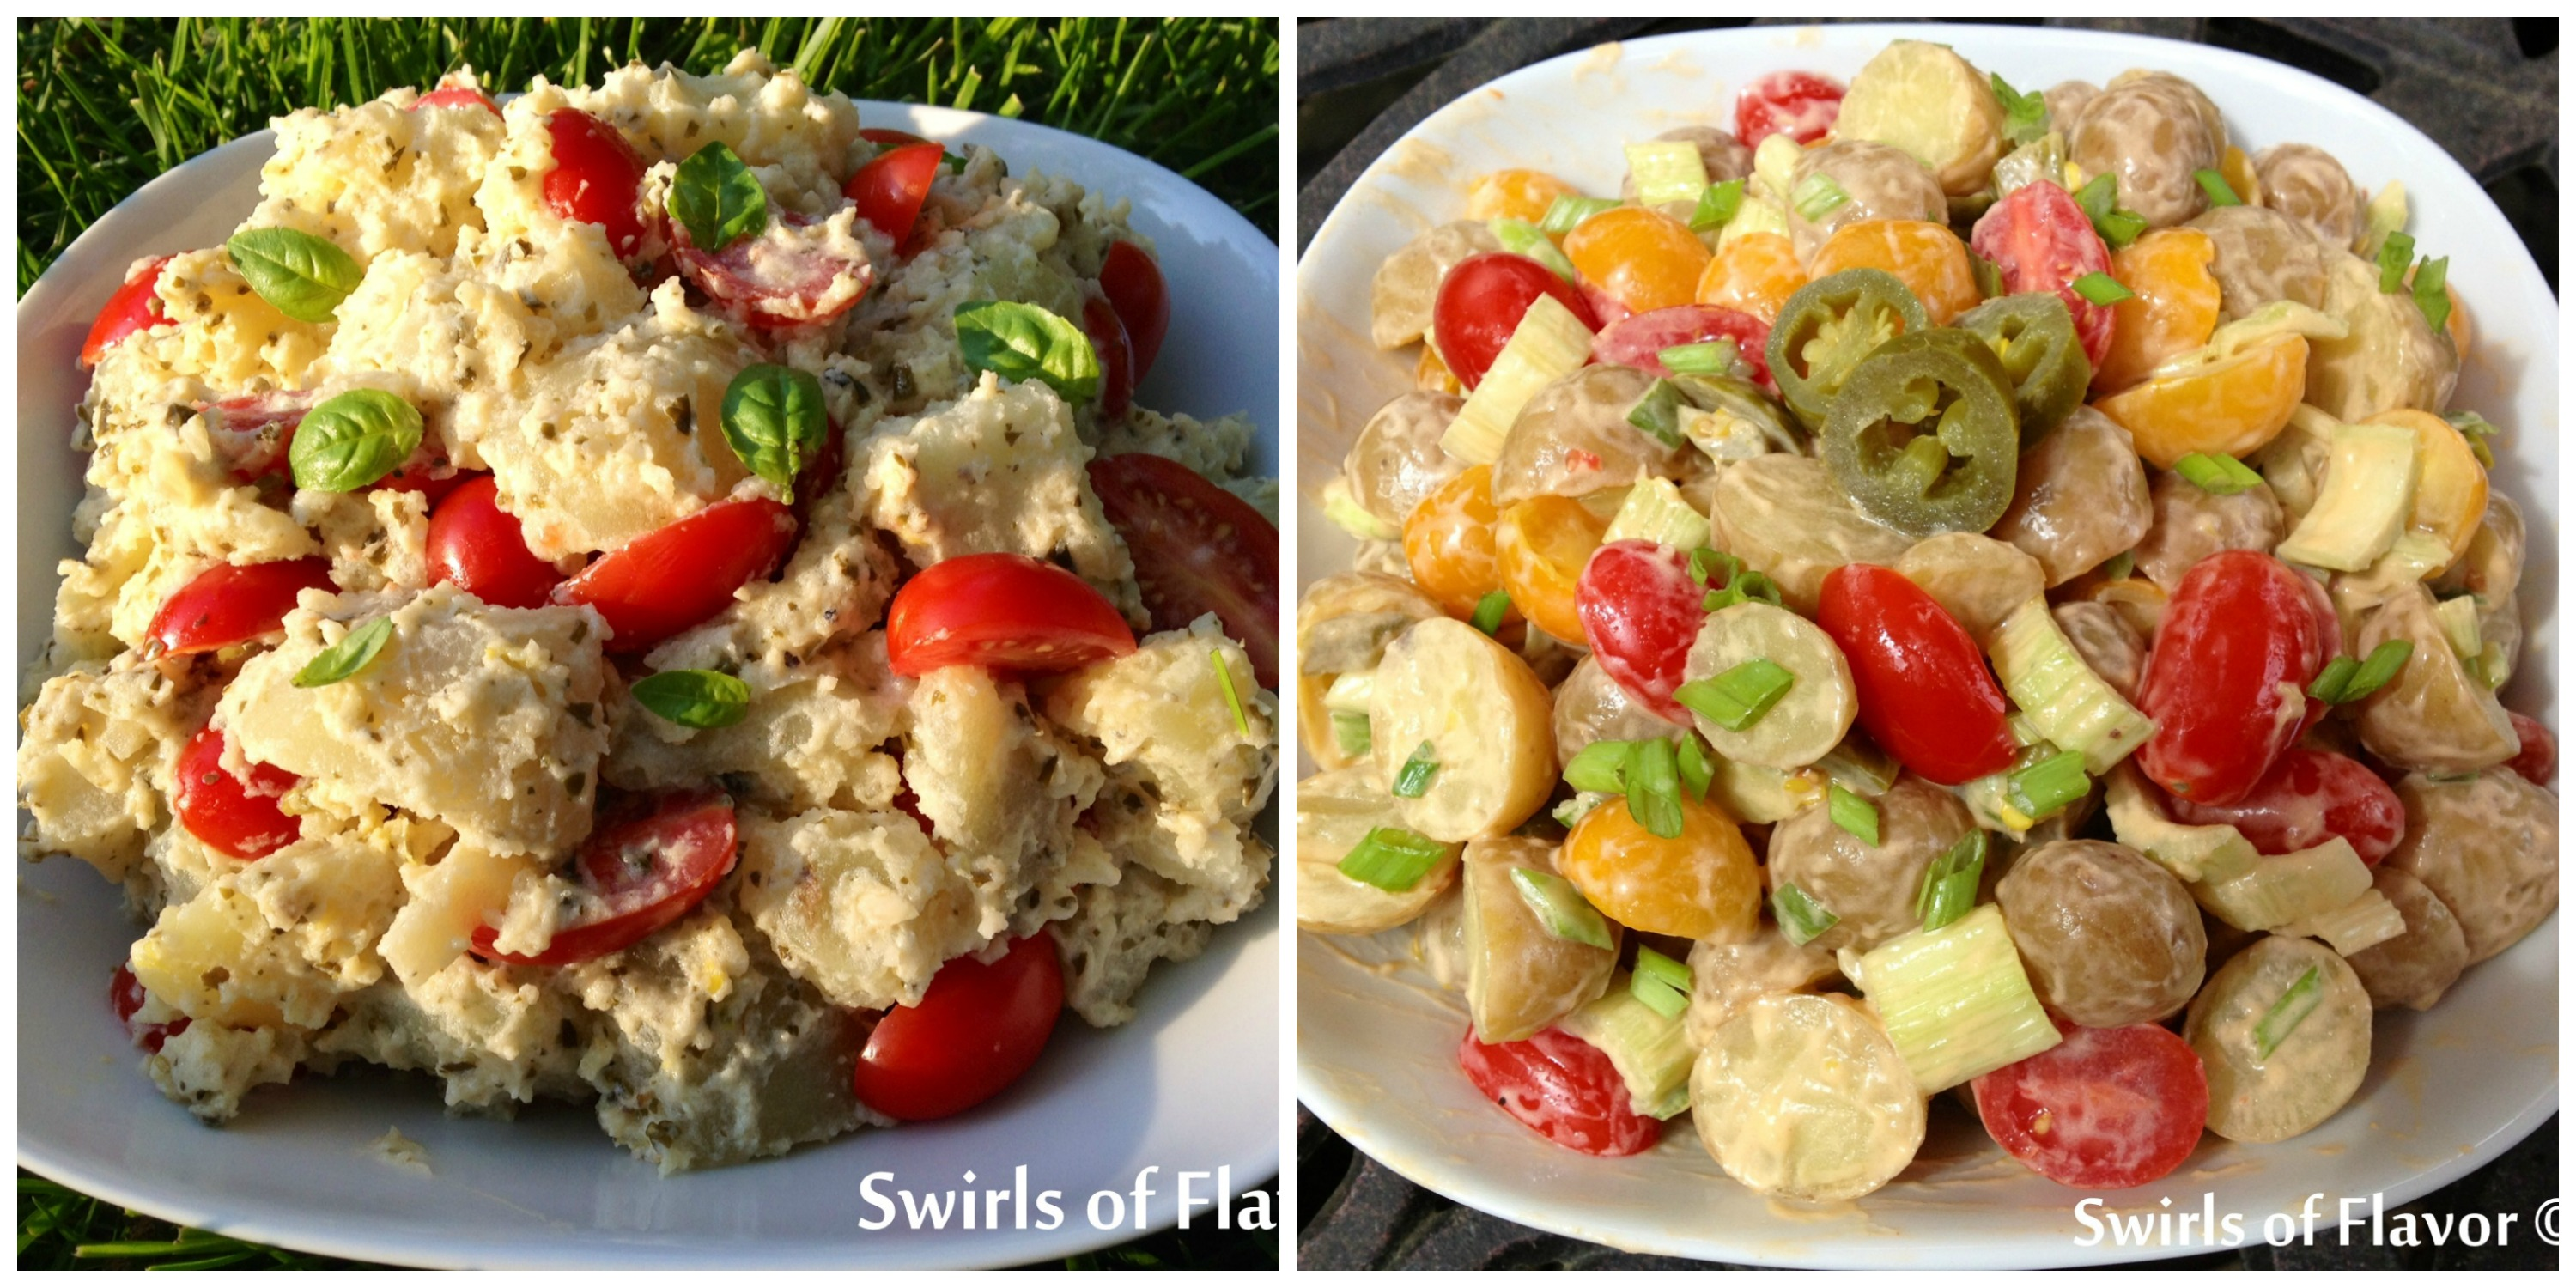 Creamy Pesto Potato Salad and Buffalo Potato Salad